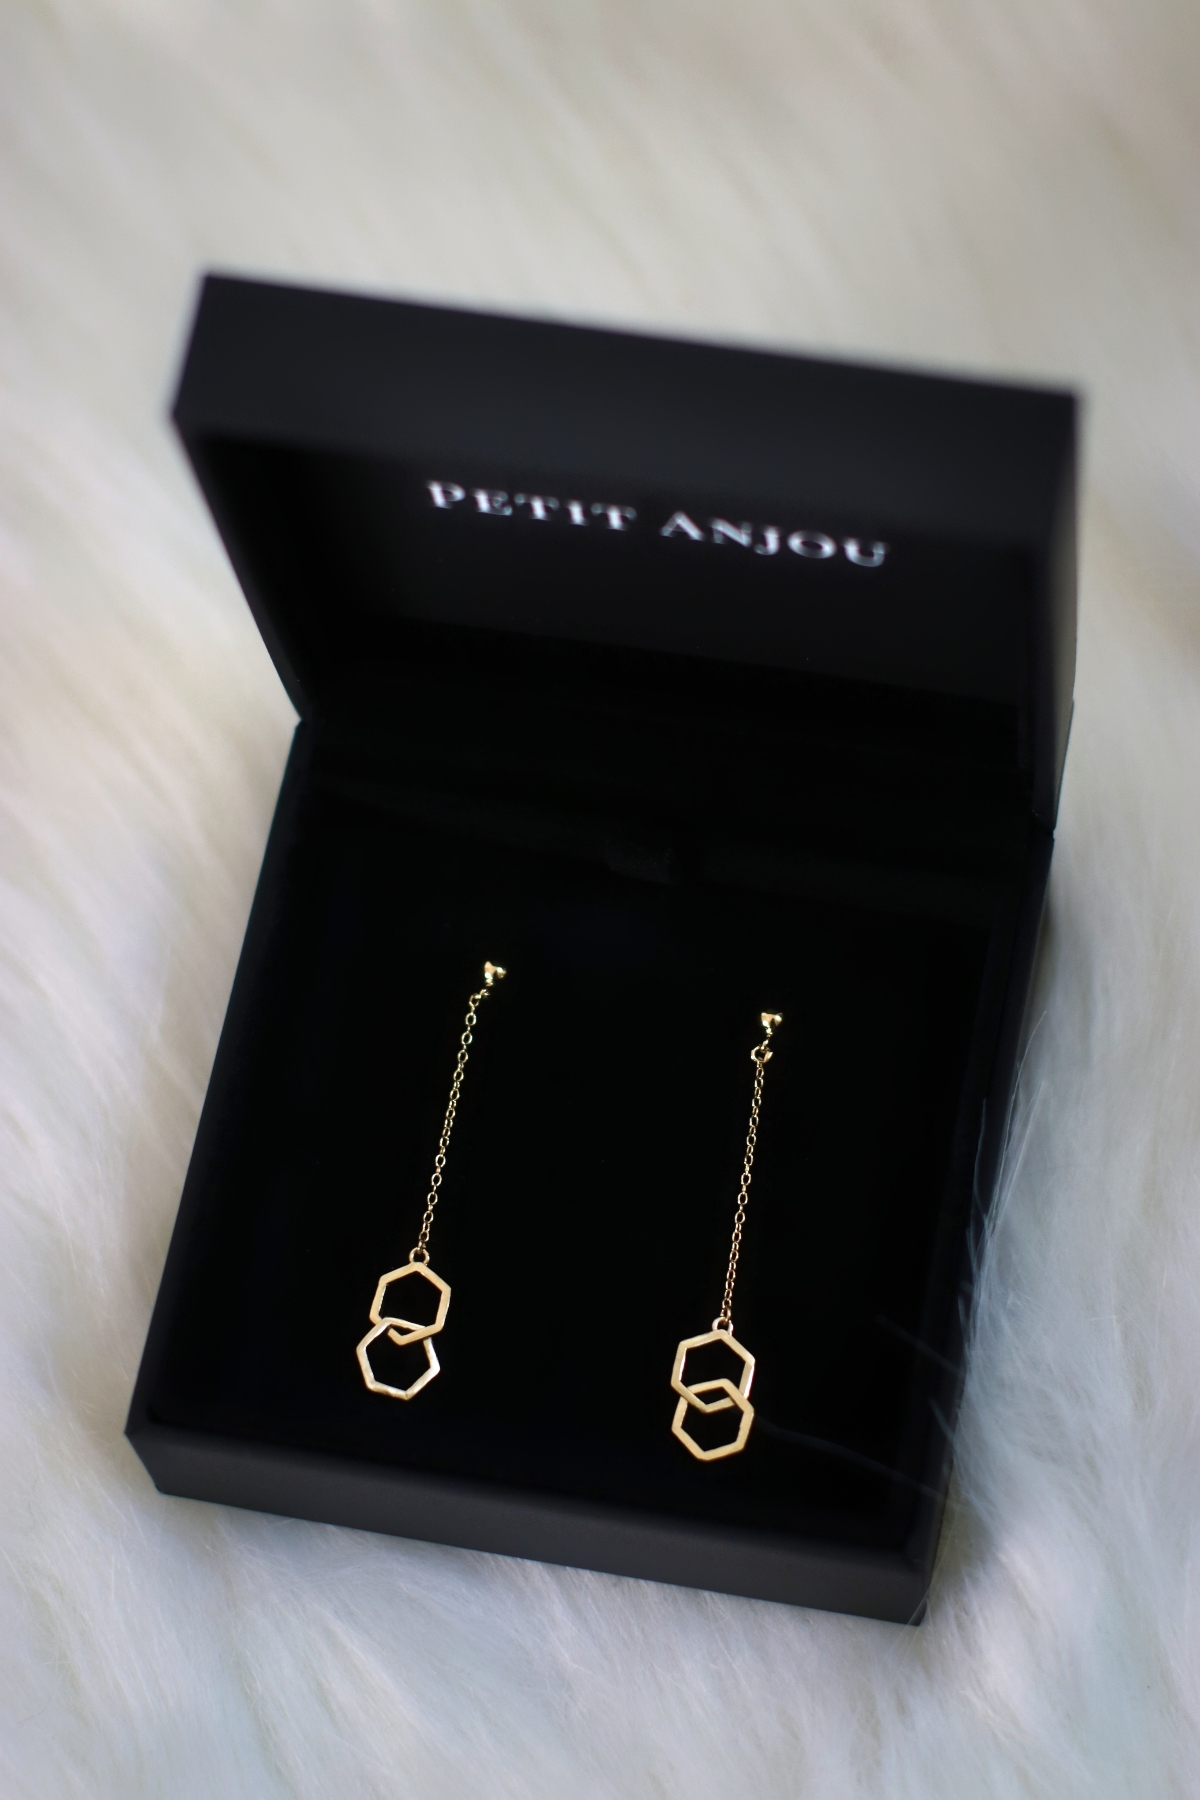 Petit Anjou Aria Jewelry Collection